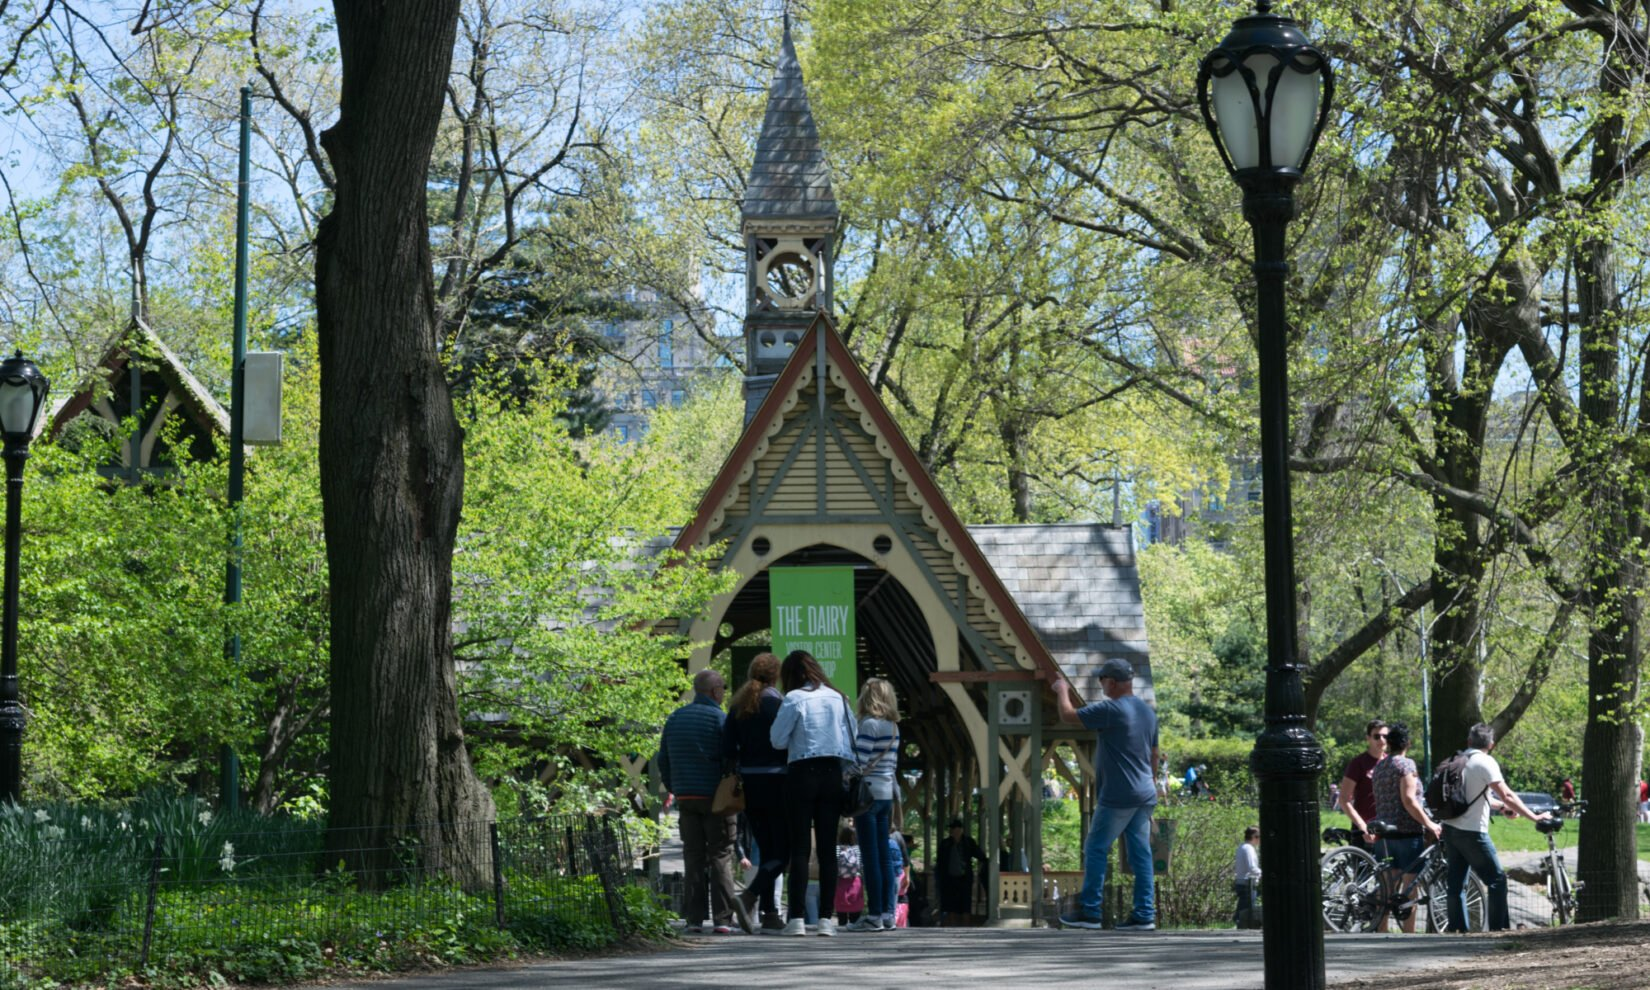 Park-goers congregate in dappled spring sunlight outside the Dairy